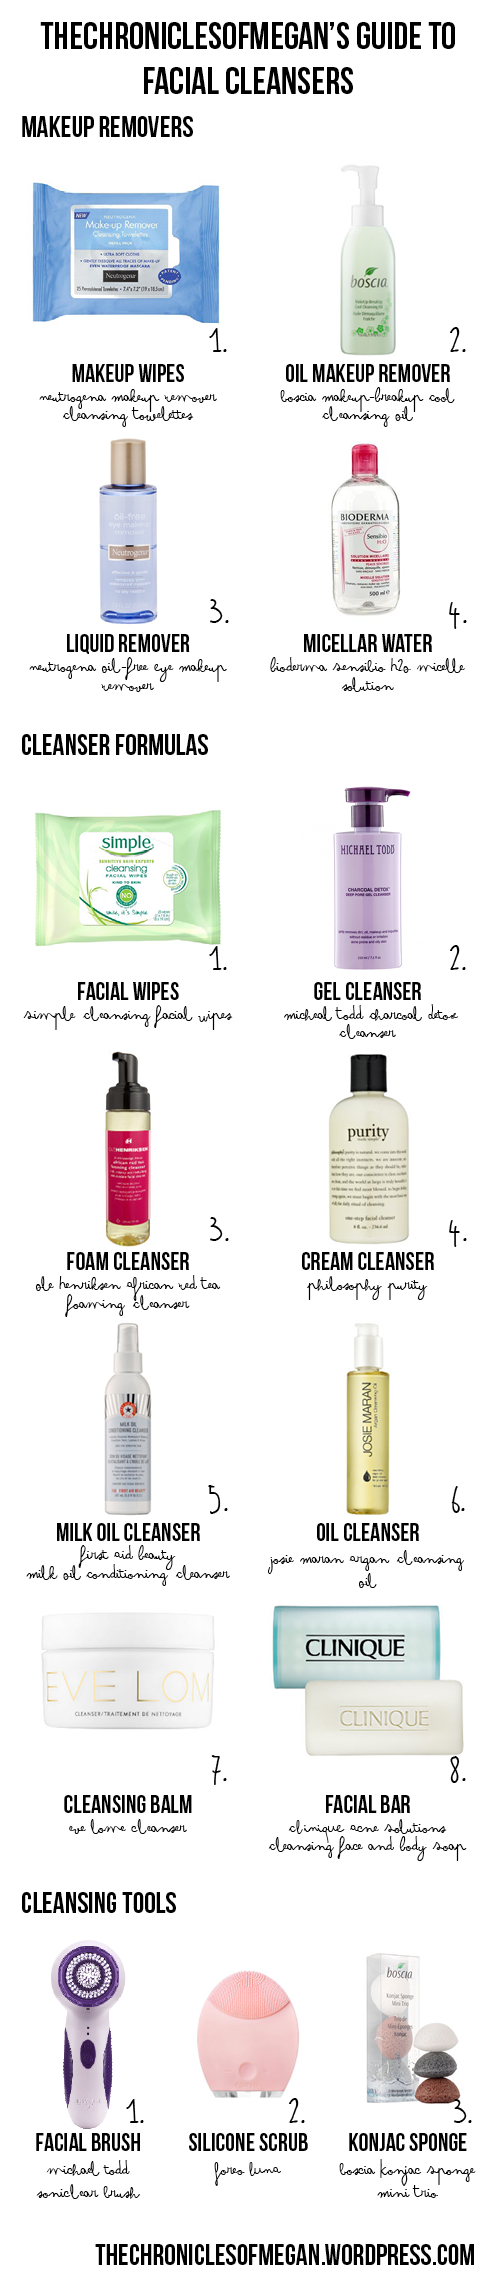 facialcleansers101